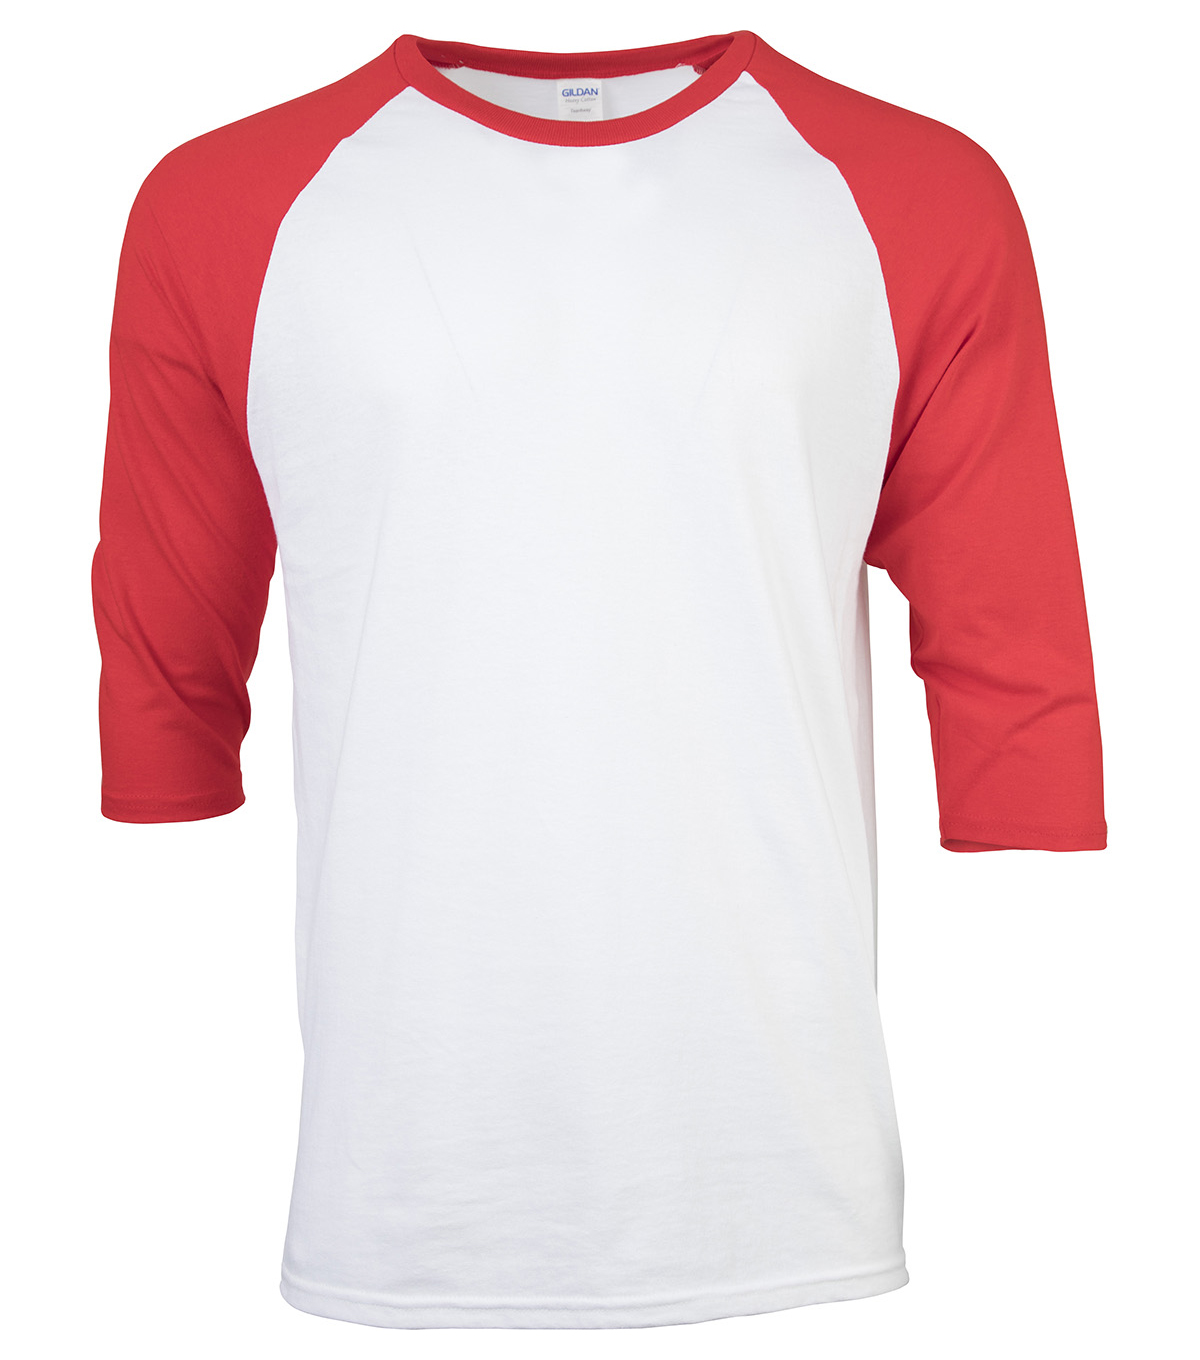 Gildan Large Adult Raglan Crew Sport T-Shirt, White-red